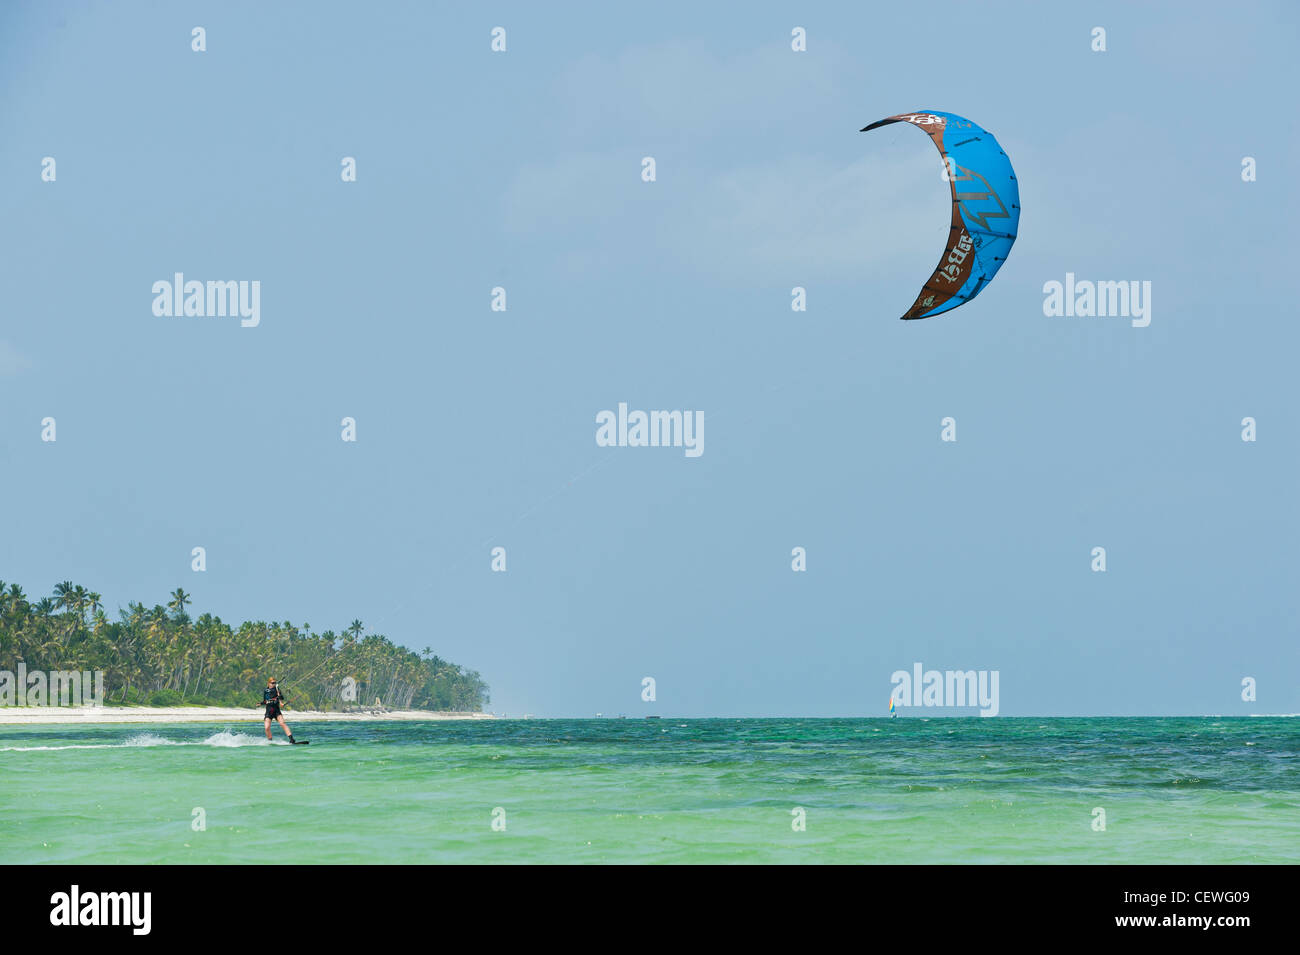 Kite surfer at Bwejuu east coast of Zanzibar Tanzania - Stock Image